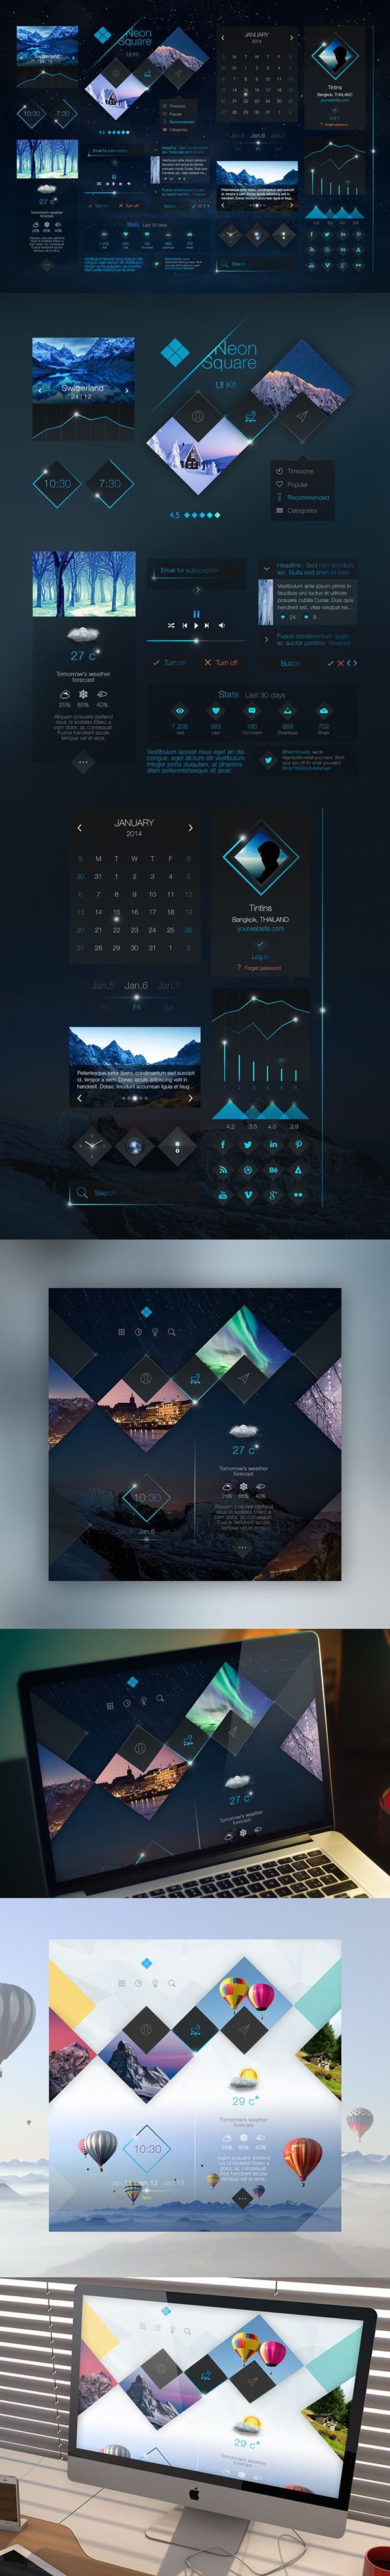 Neon Square UI Kit by Tintin